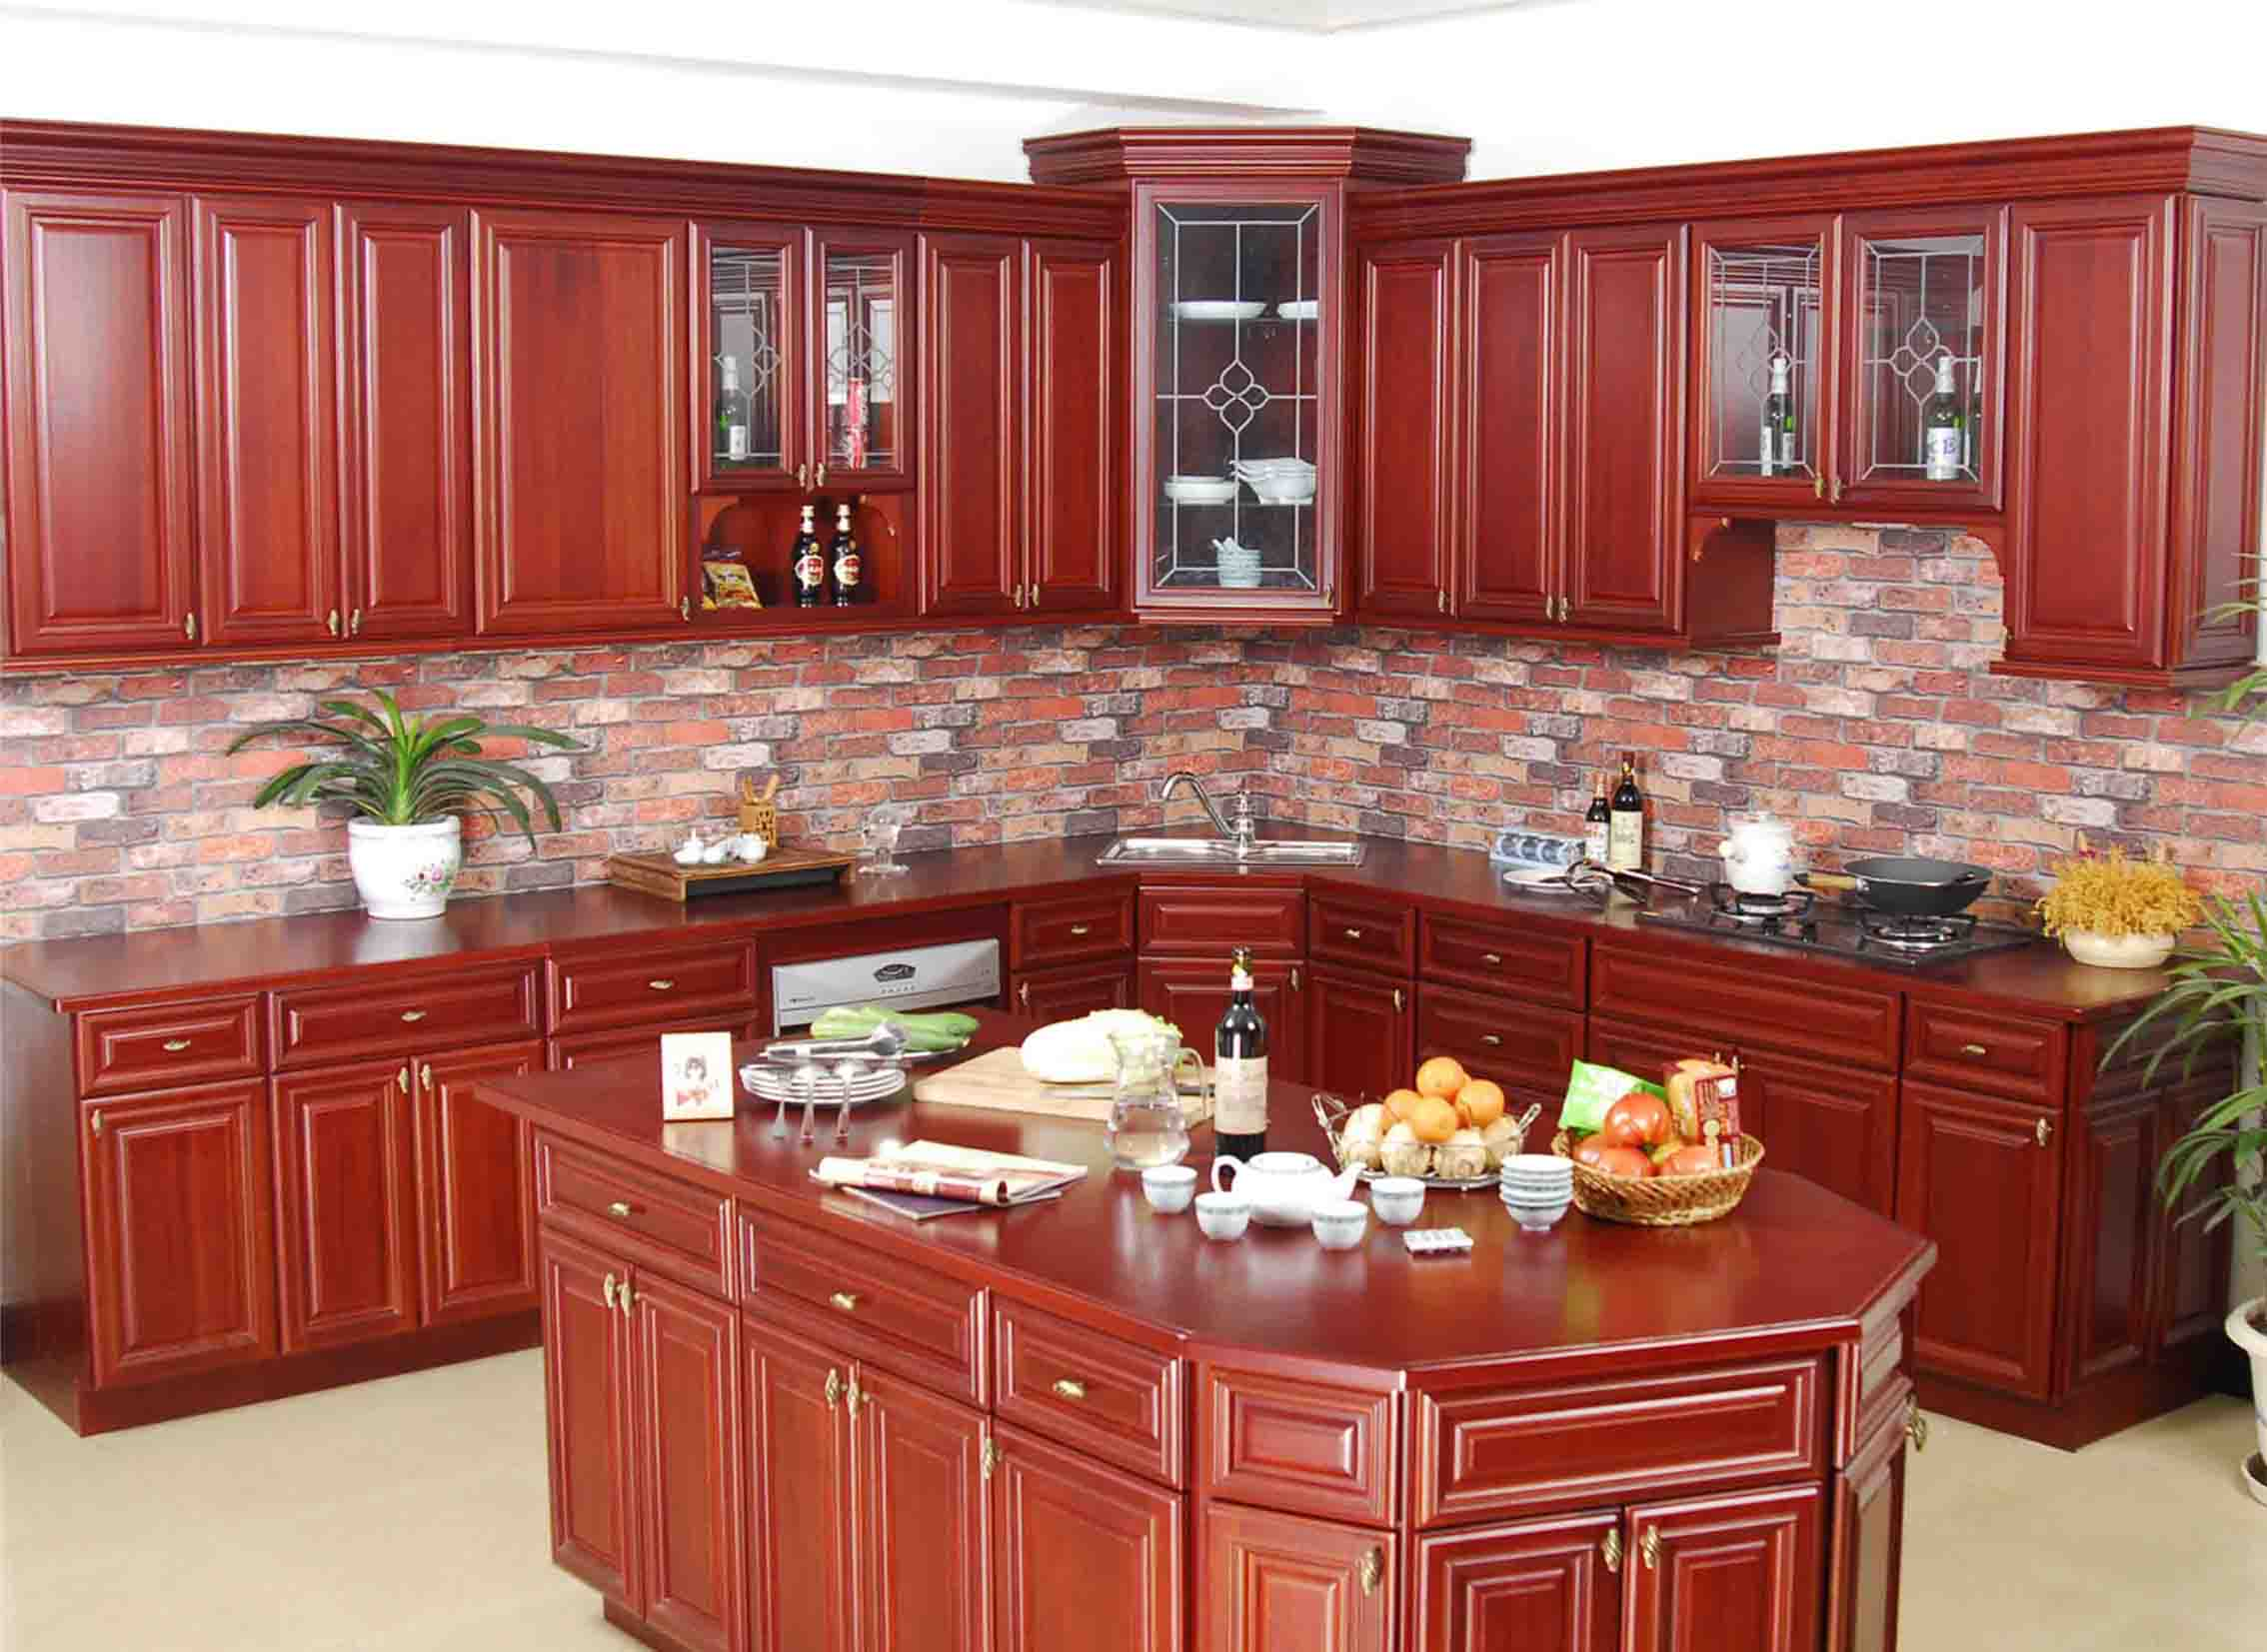 interior furniture kitchen cabinet outlet traditional reddish brown polished oak cabinets solid wooden kitchen s to go buy online shopping cabinet companies all wood cabinet